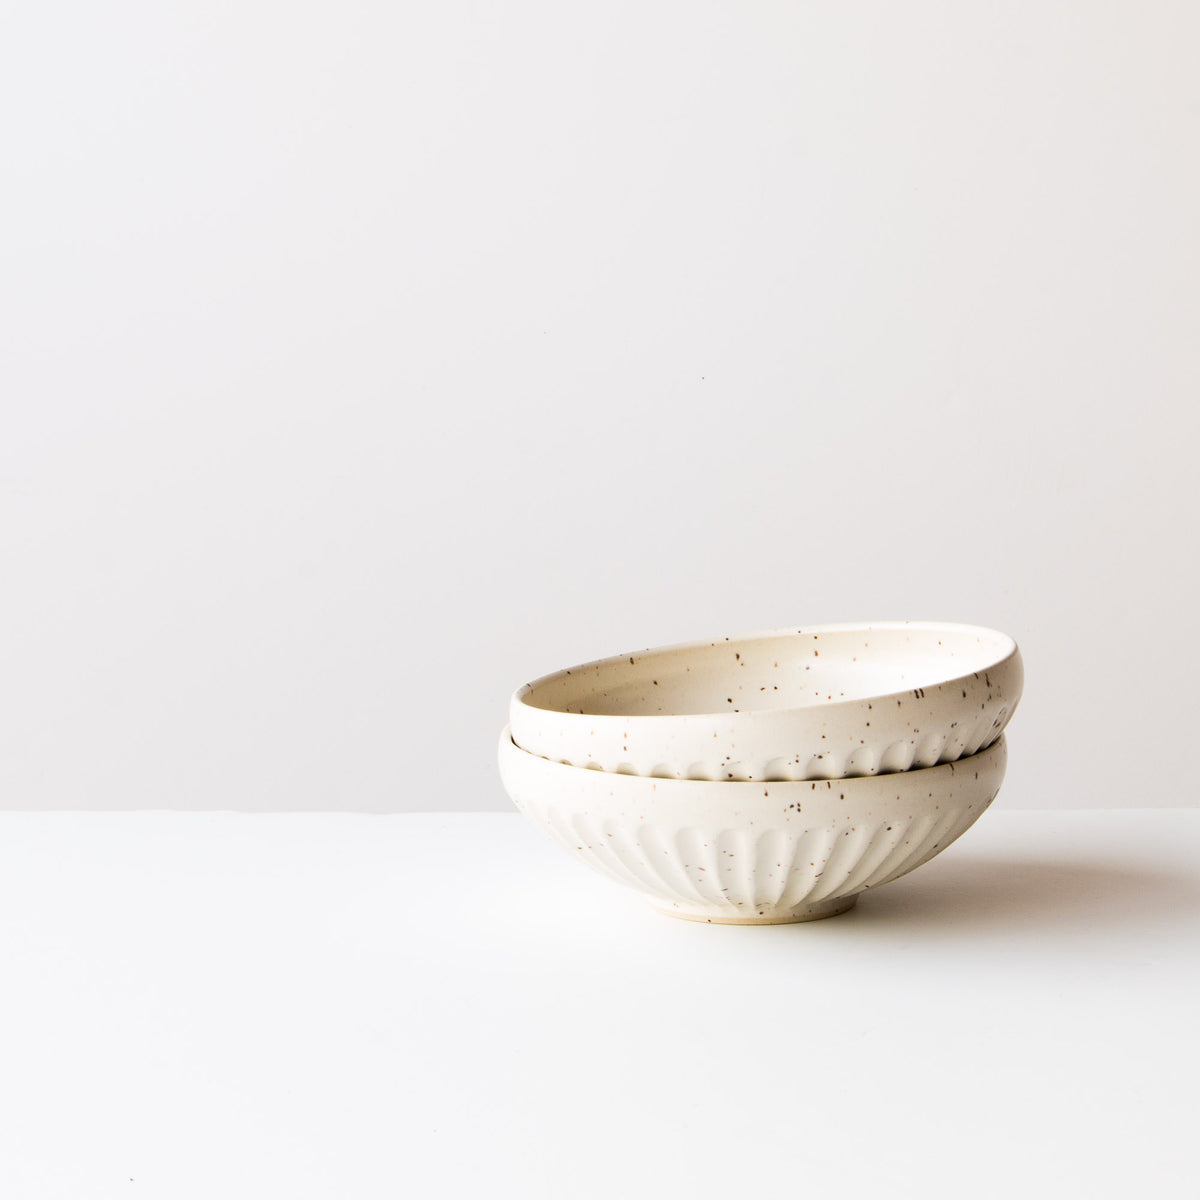 Speckled Off-White - Two Small Handmade Ceramic Bowls - Hand Thrown in Canada - Chic & Basta